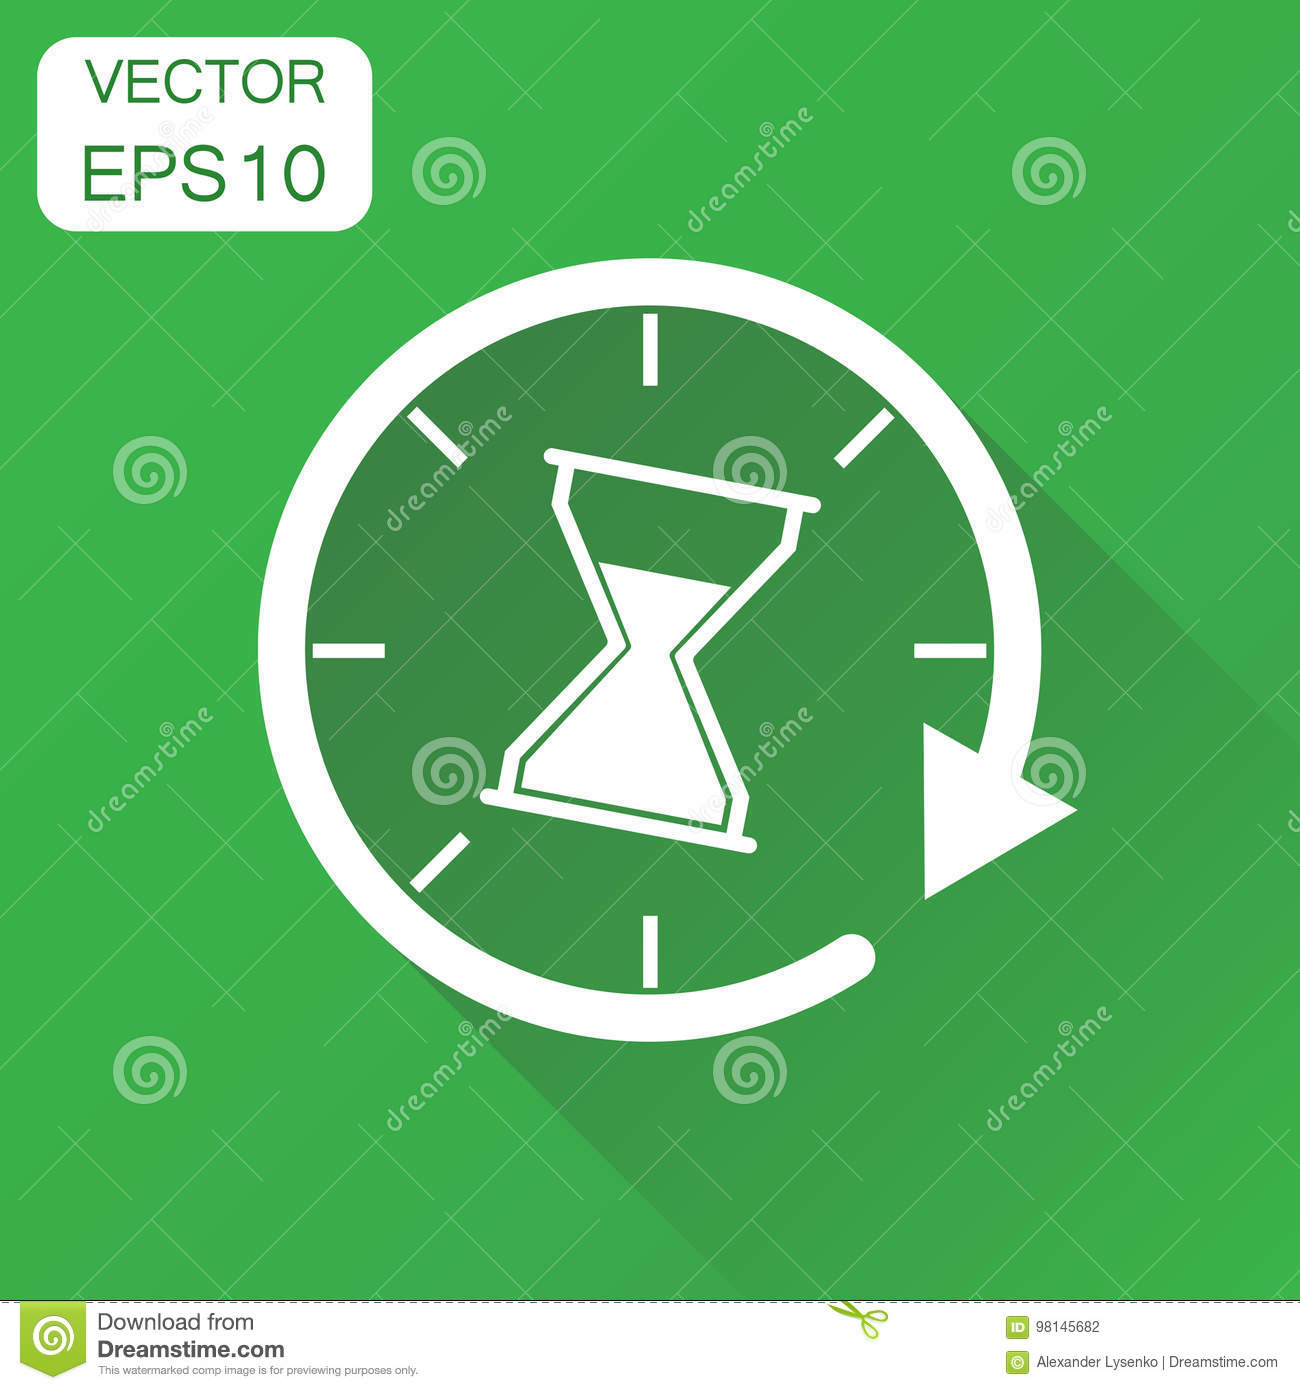 Time sandglass icon. Business concept clock hourglass pictogram.